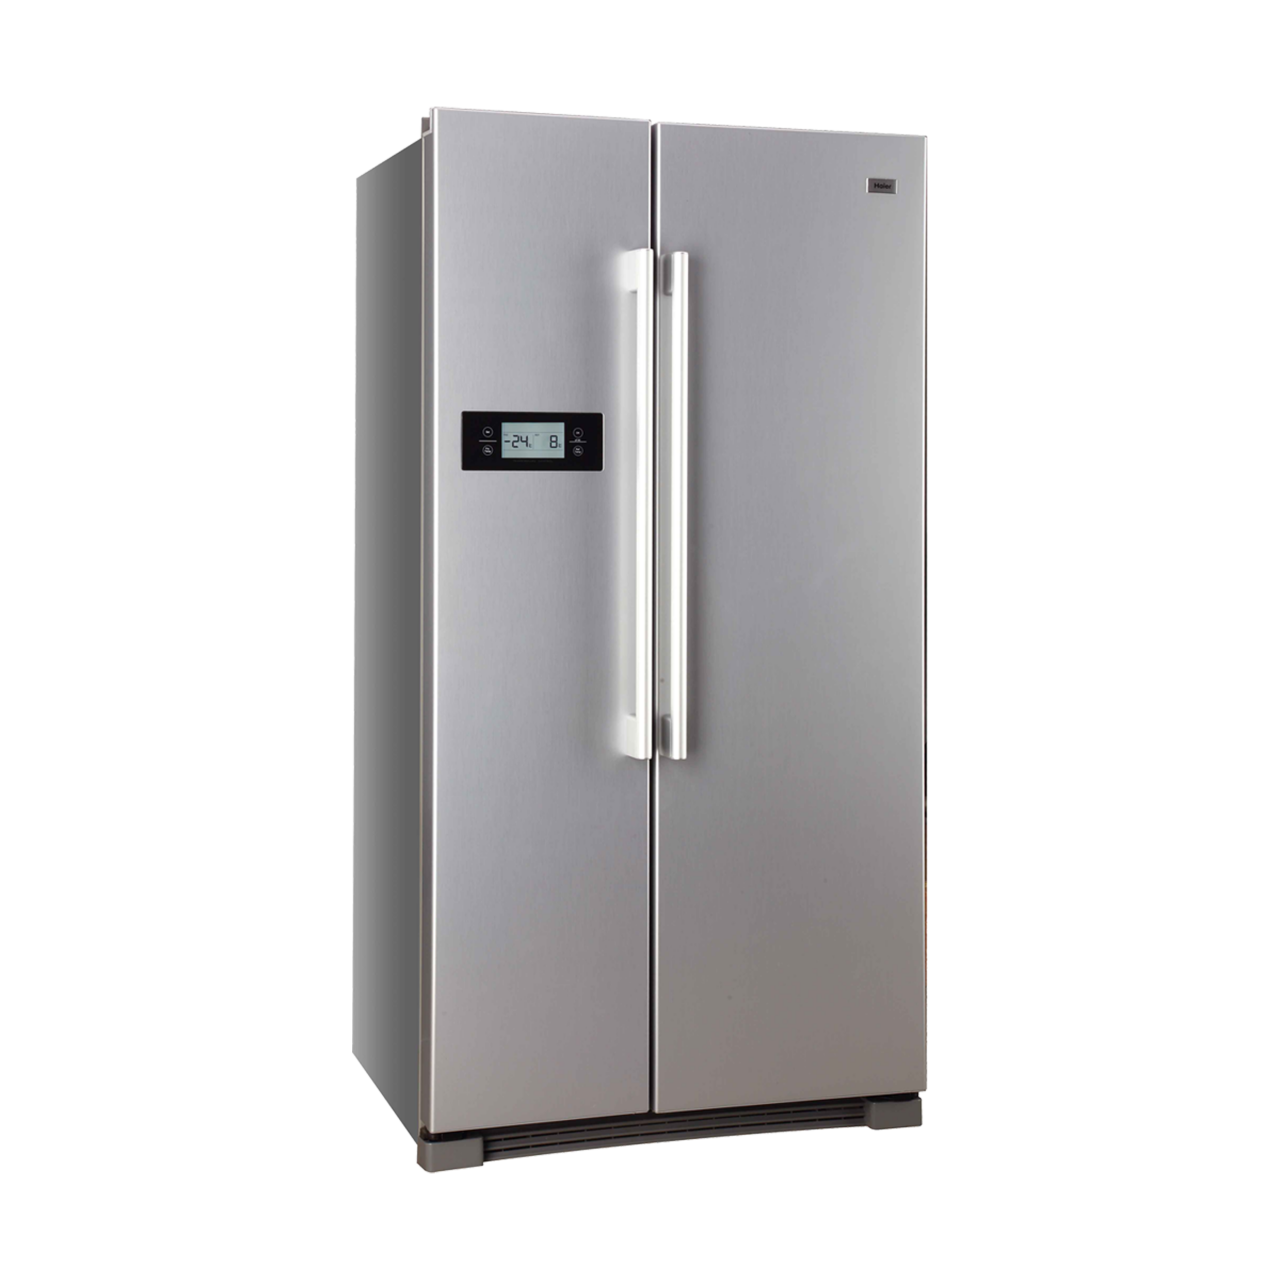 haier side by side refrigerator hrf 628df6 in pakistan. Black Bedroom Furniture Sets. Home Design Ideas